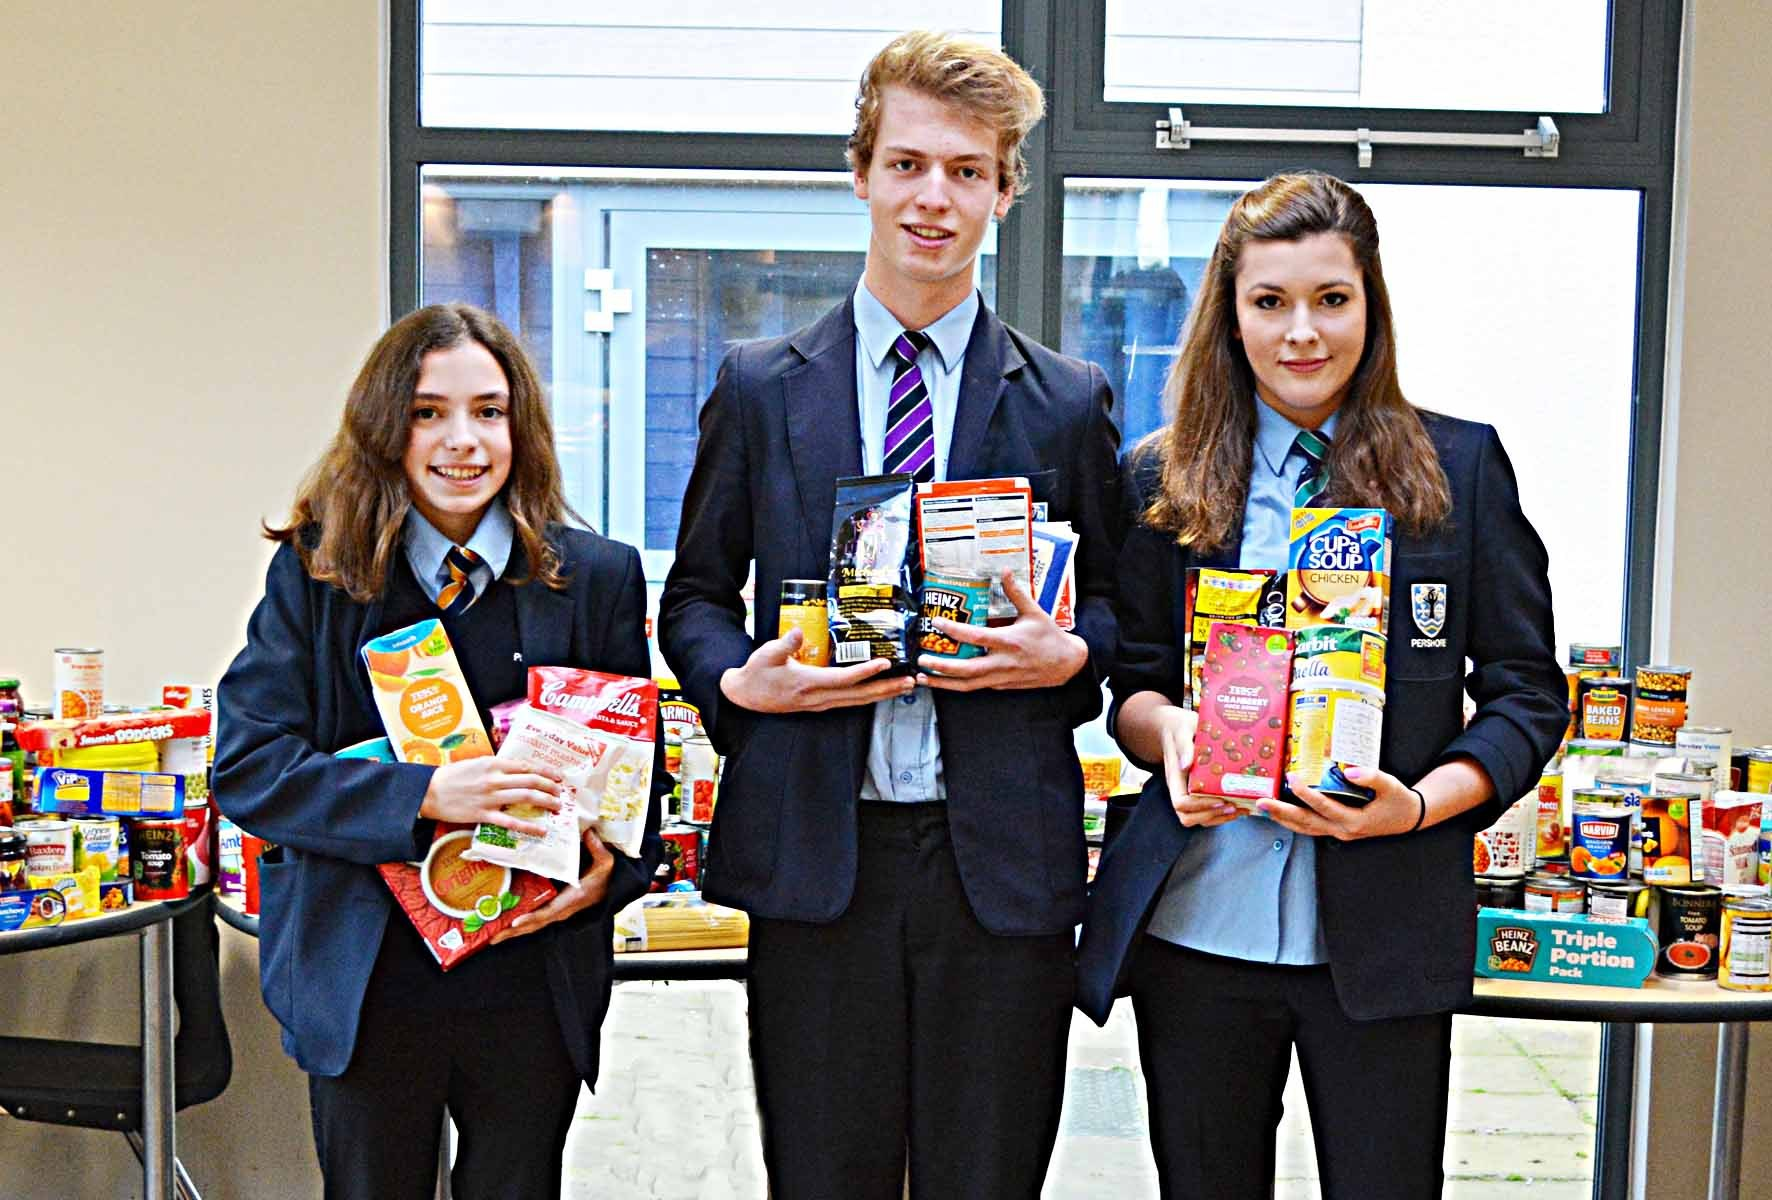 GENEROUS: Pupils at Pershore High School held a food collection in aid of Worcester Food Bank. Pictured (l-r) Rebecca Stothard, Luke Gerber and Ella Spencer.